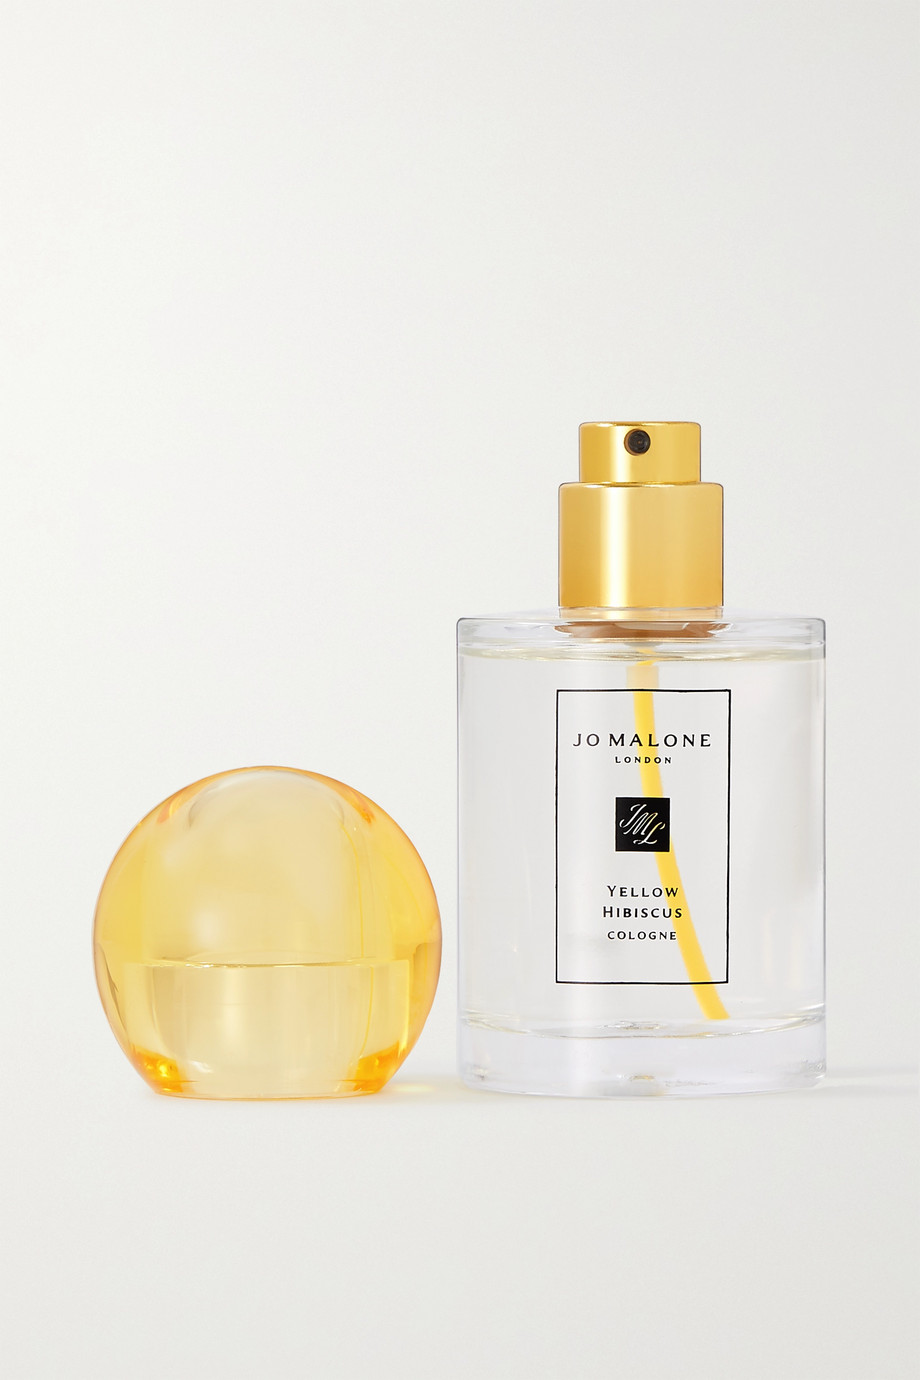 JO MALONE LONDON Cologne - Yellow Hibiscus, 30ml